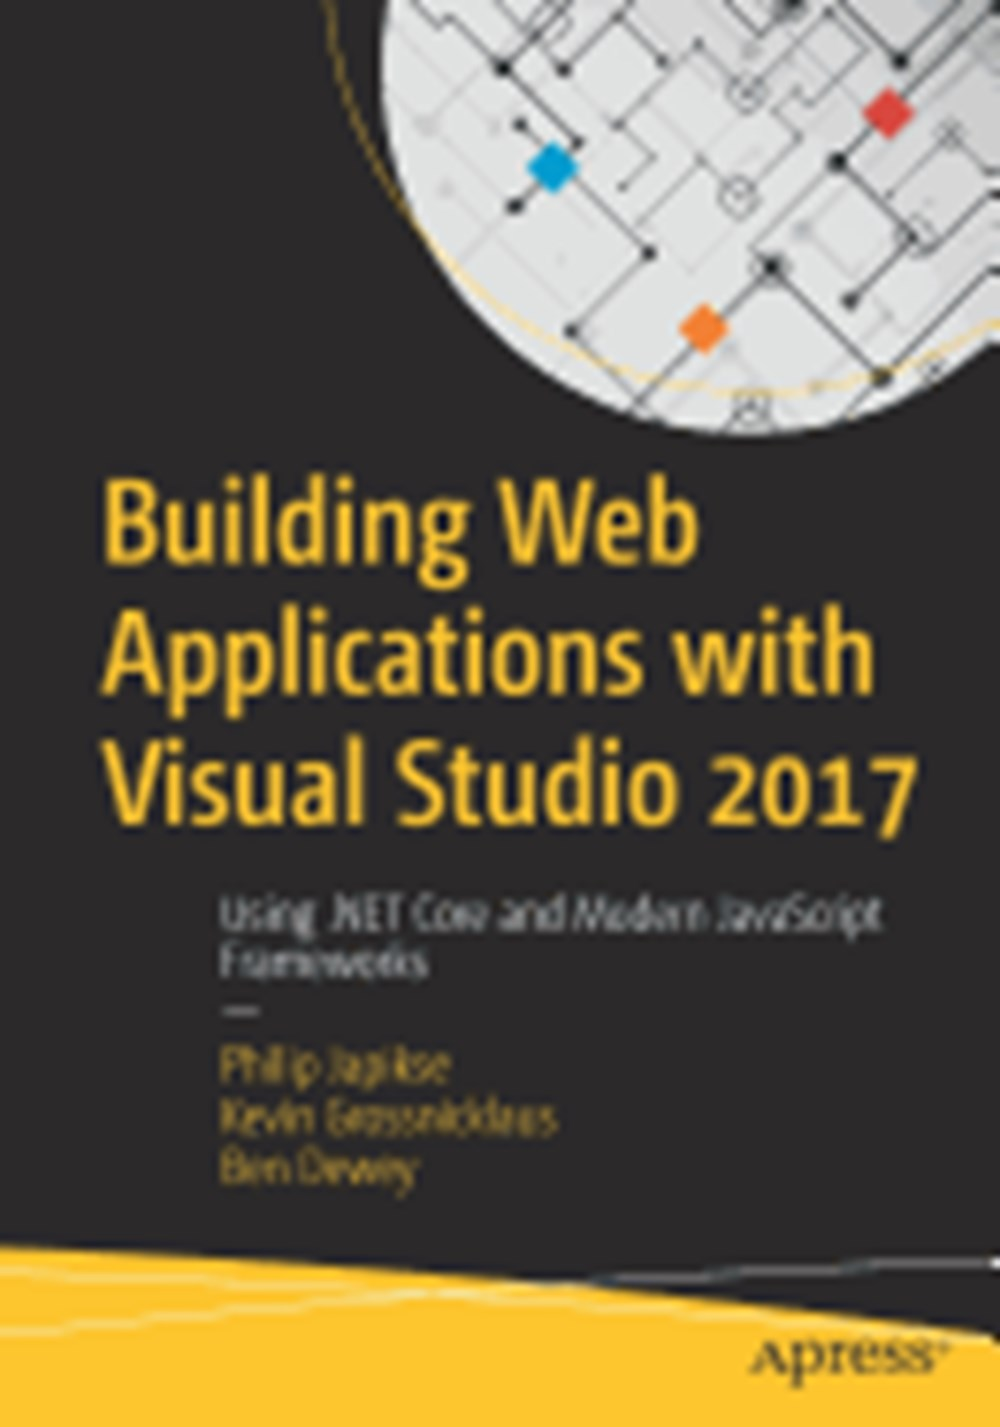 Building Web Applications with Visual Studio 2017 Using .Net Core and Modern JavaScript Frameworks